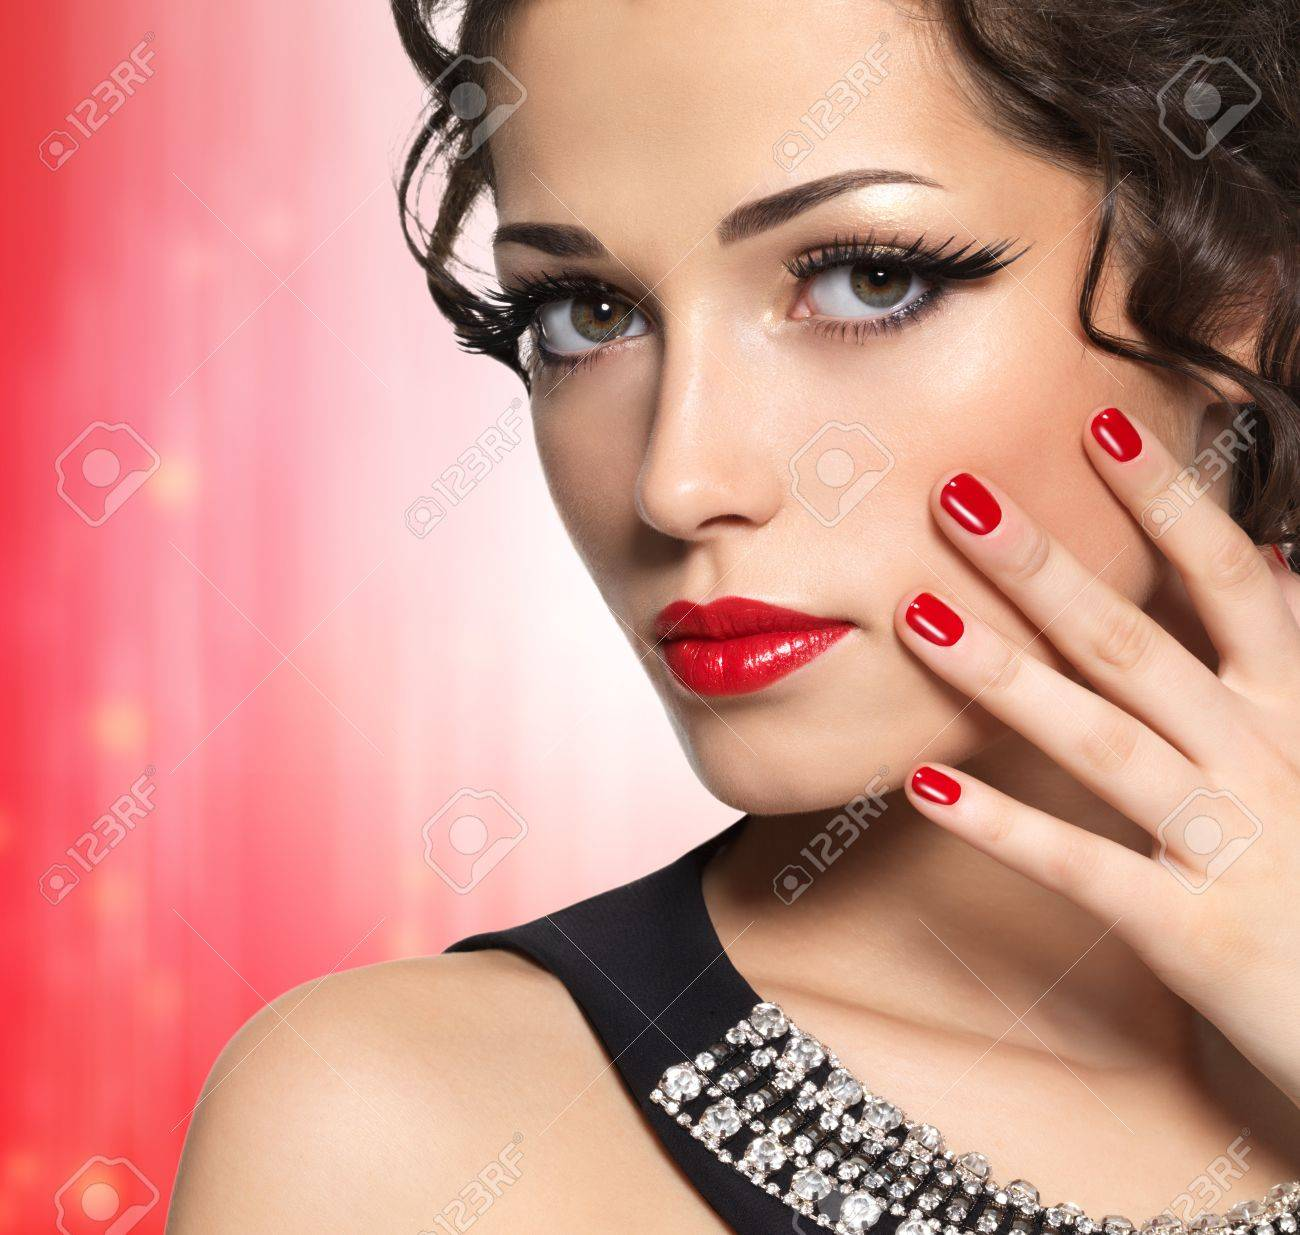 Beautiful  fashion model with red manicure and lips - isolated on white background Stock Photo - 17286941